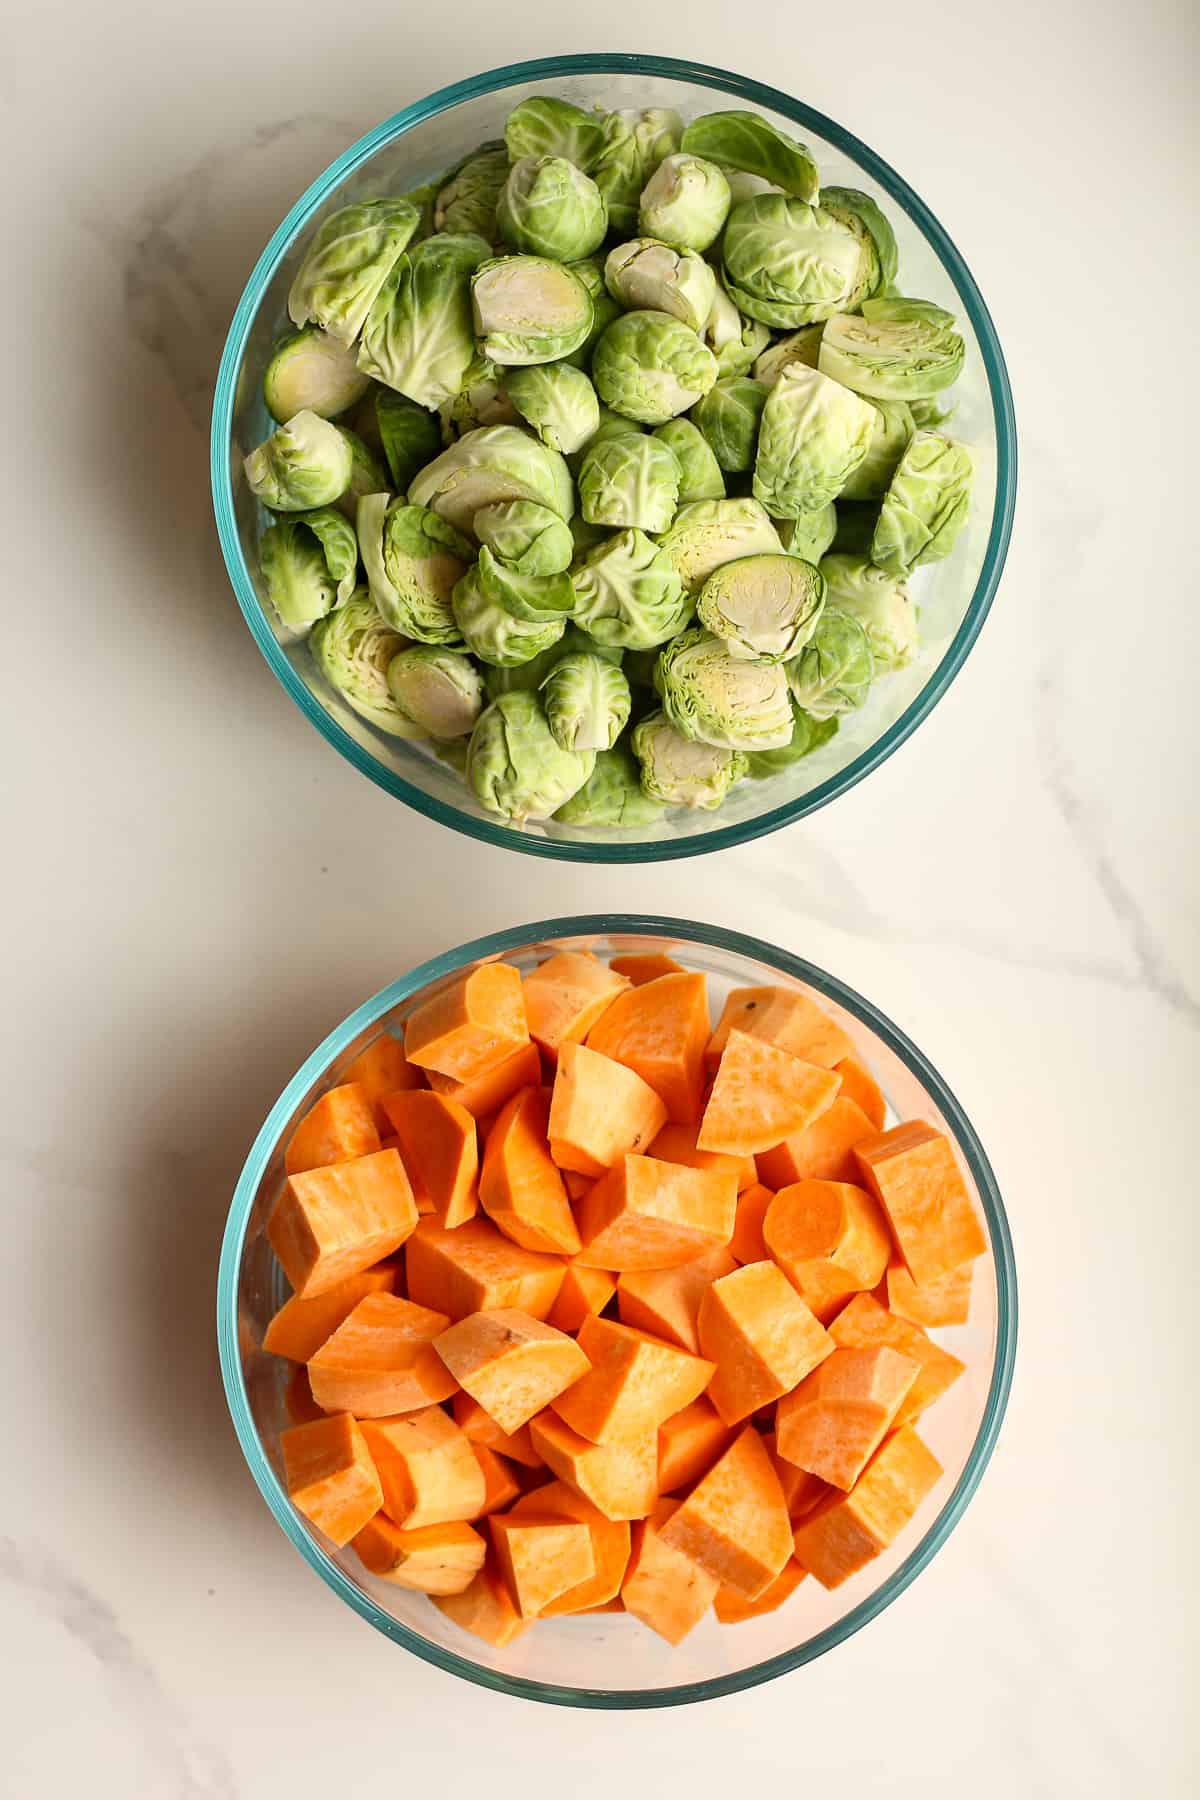 A bowl of chopped Brussels sprouts and another of chopped sweet potatoes.